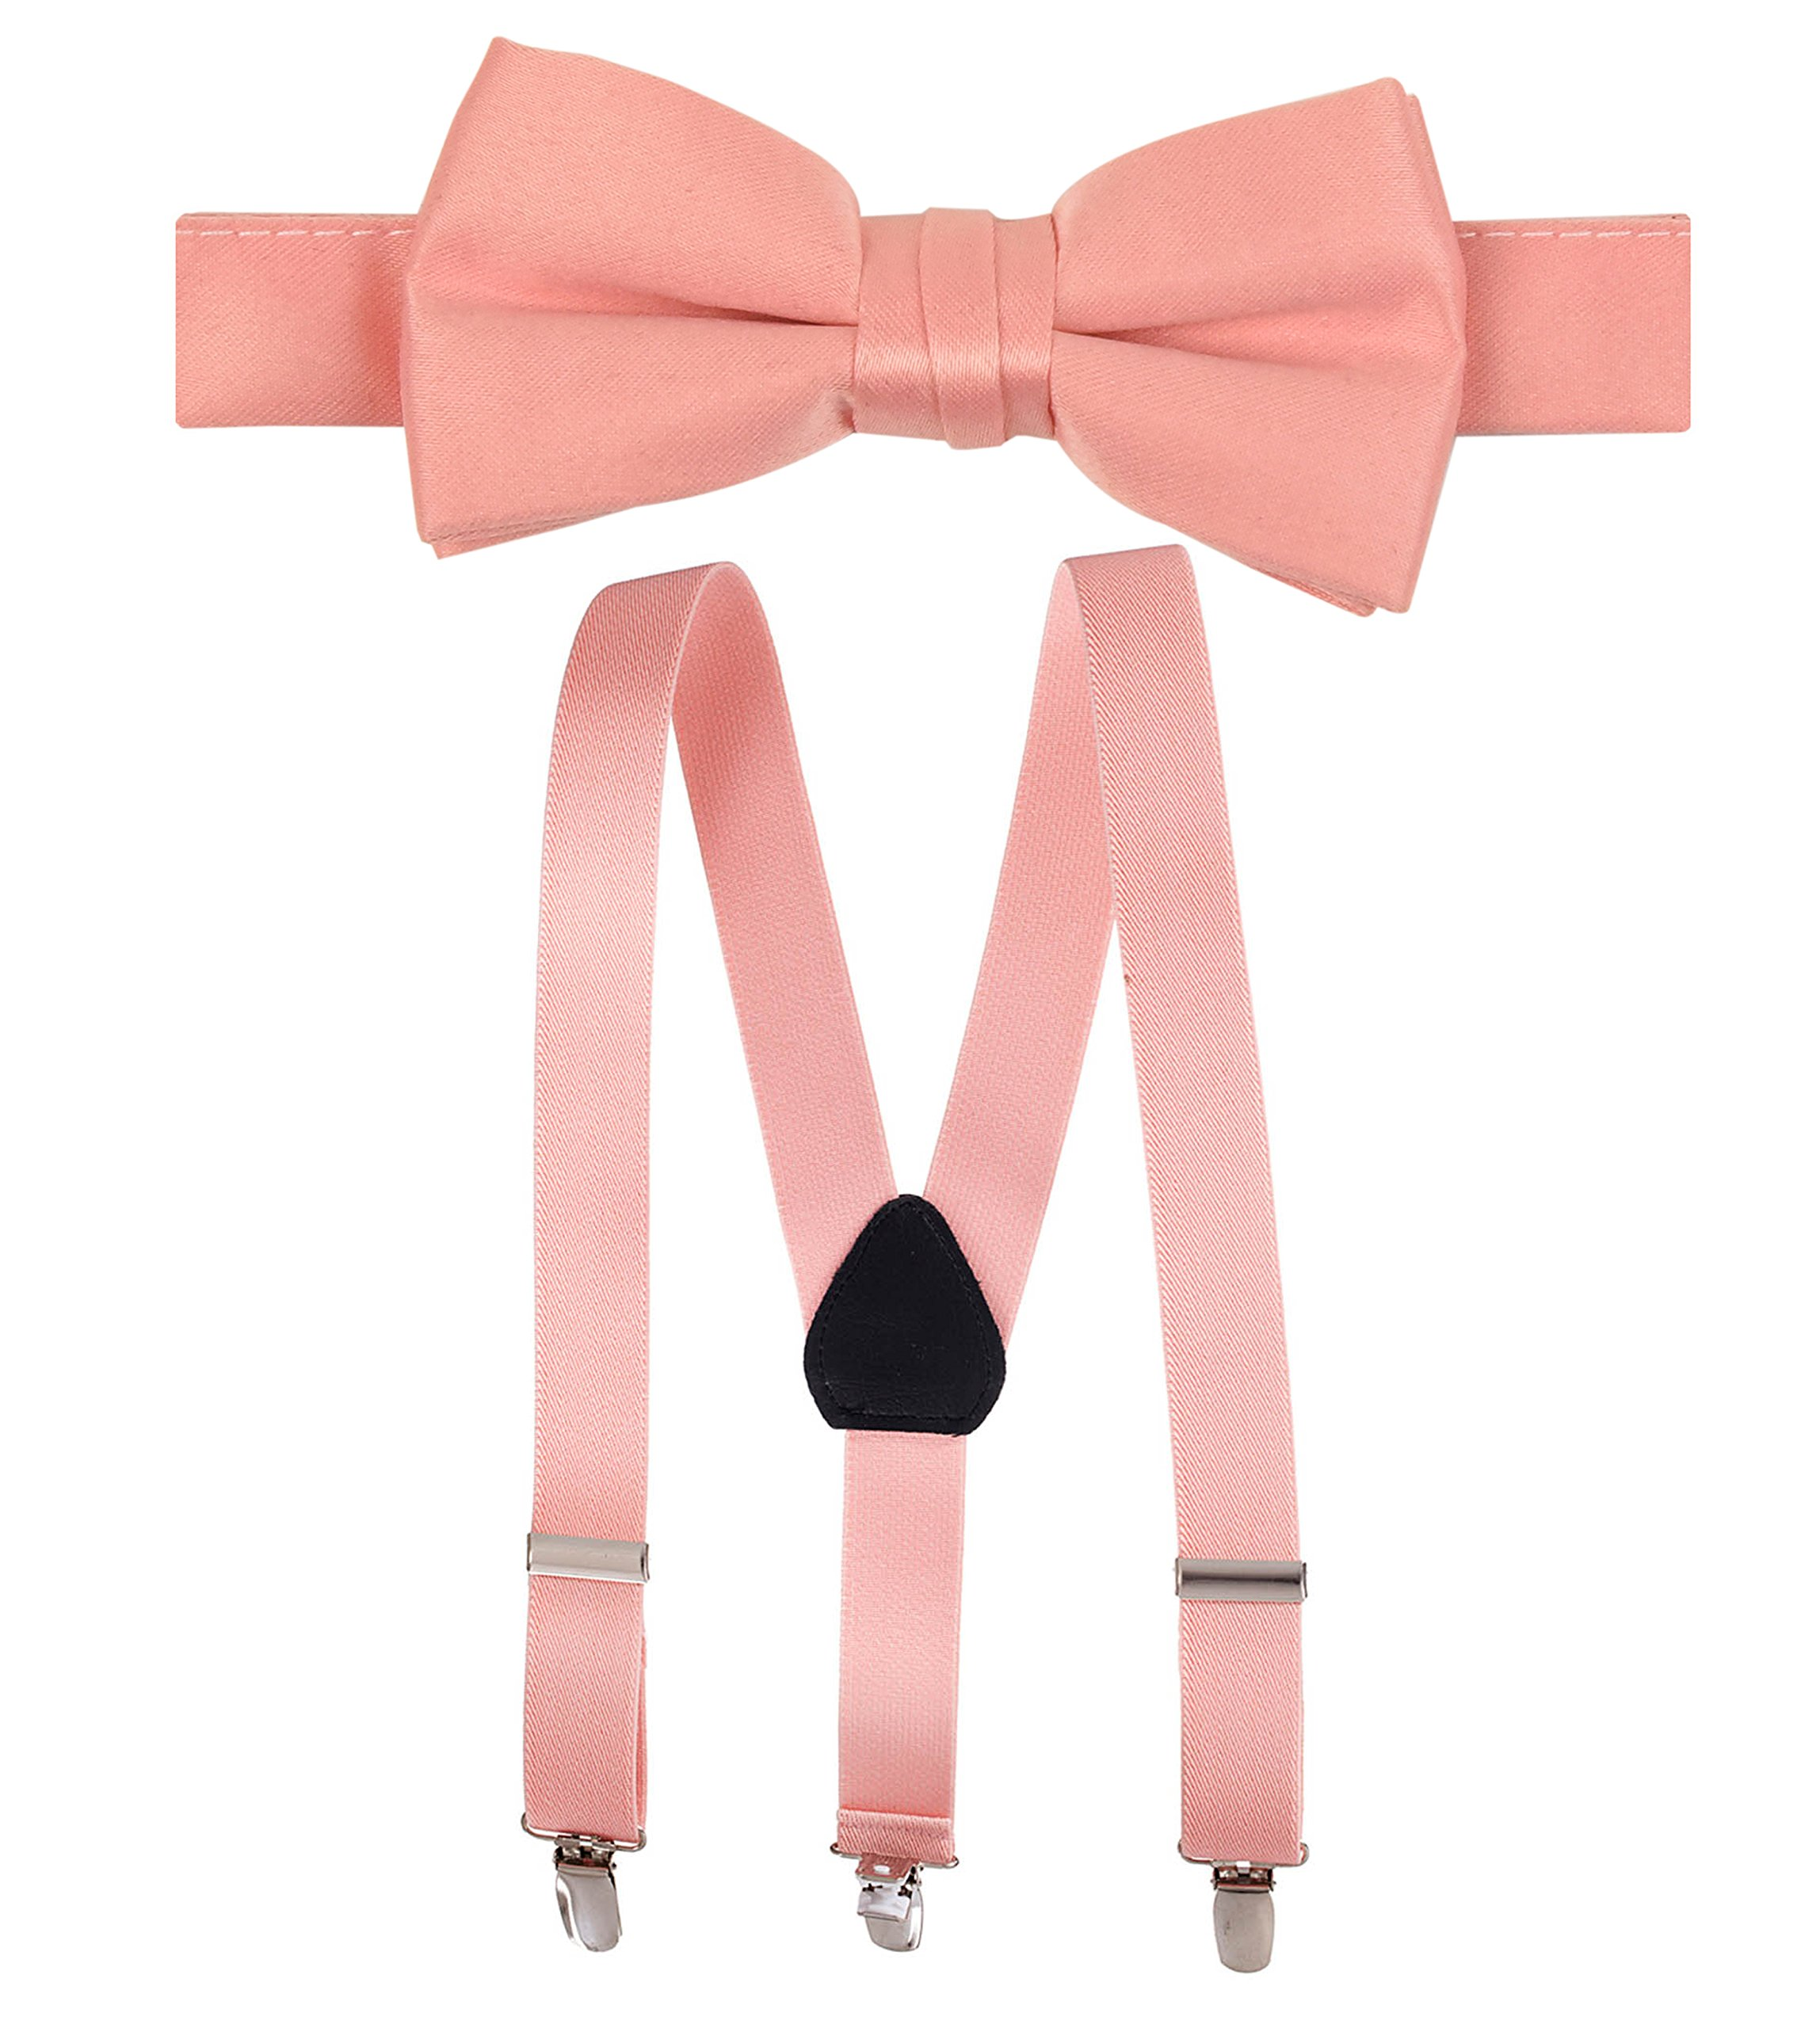 Hold'Em Suspender and Bow Tie Set for Kids, Boys, and Baby - Proudly Made in USA - Extra Sturdy Polished Silver Metal Clips, Pre tied Bow Tie-Peach 22''